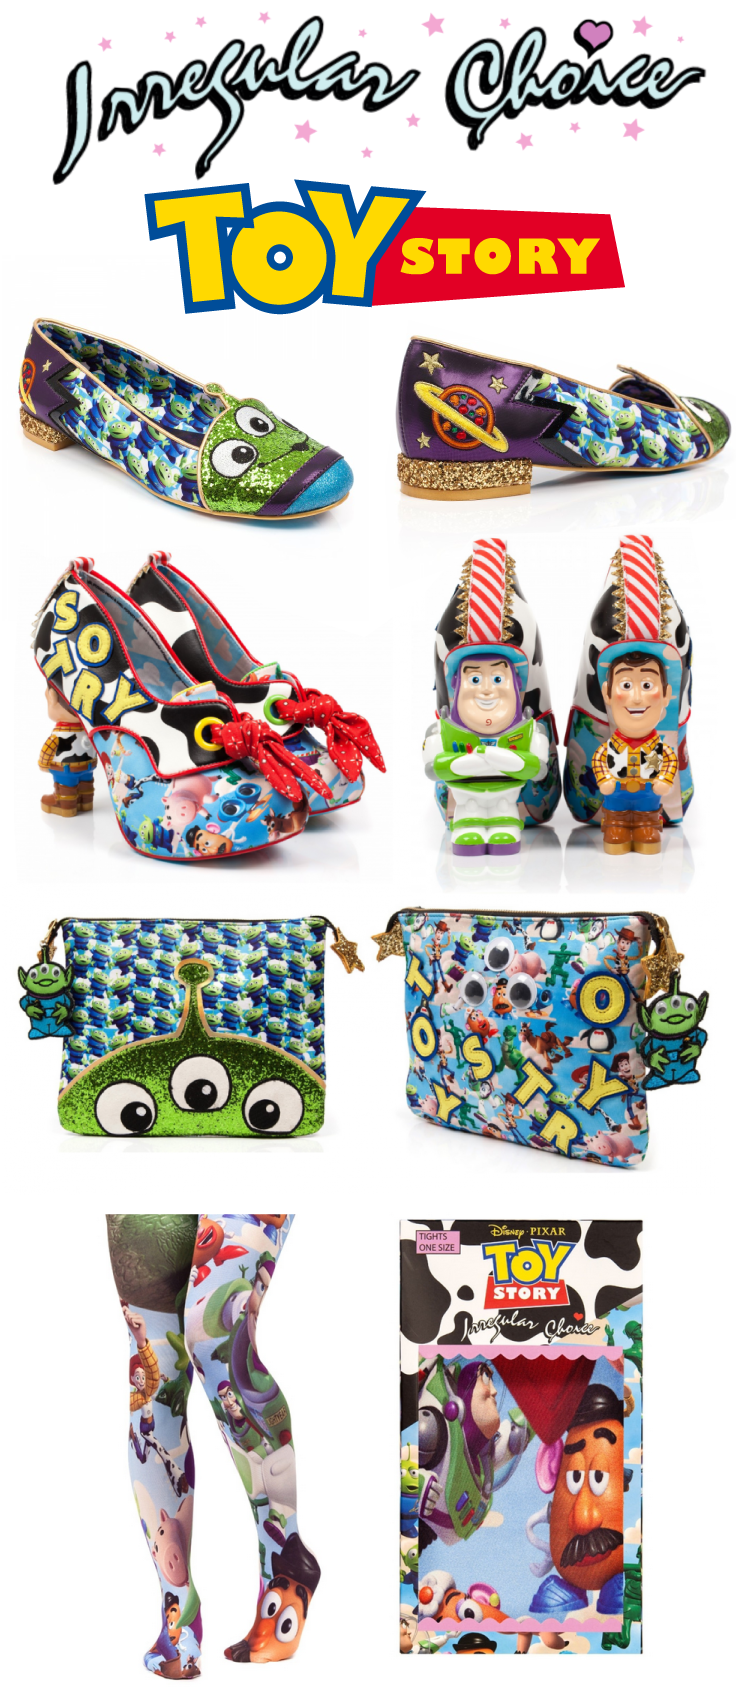 4aa63790e3d Check out this sneak peek of the NEW Toy Story x Irregular Choice  collection coming soon!!